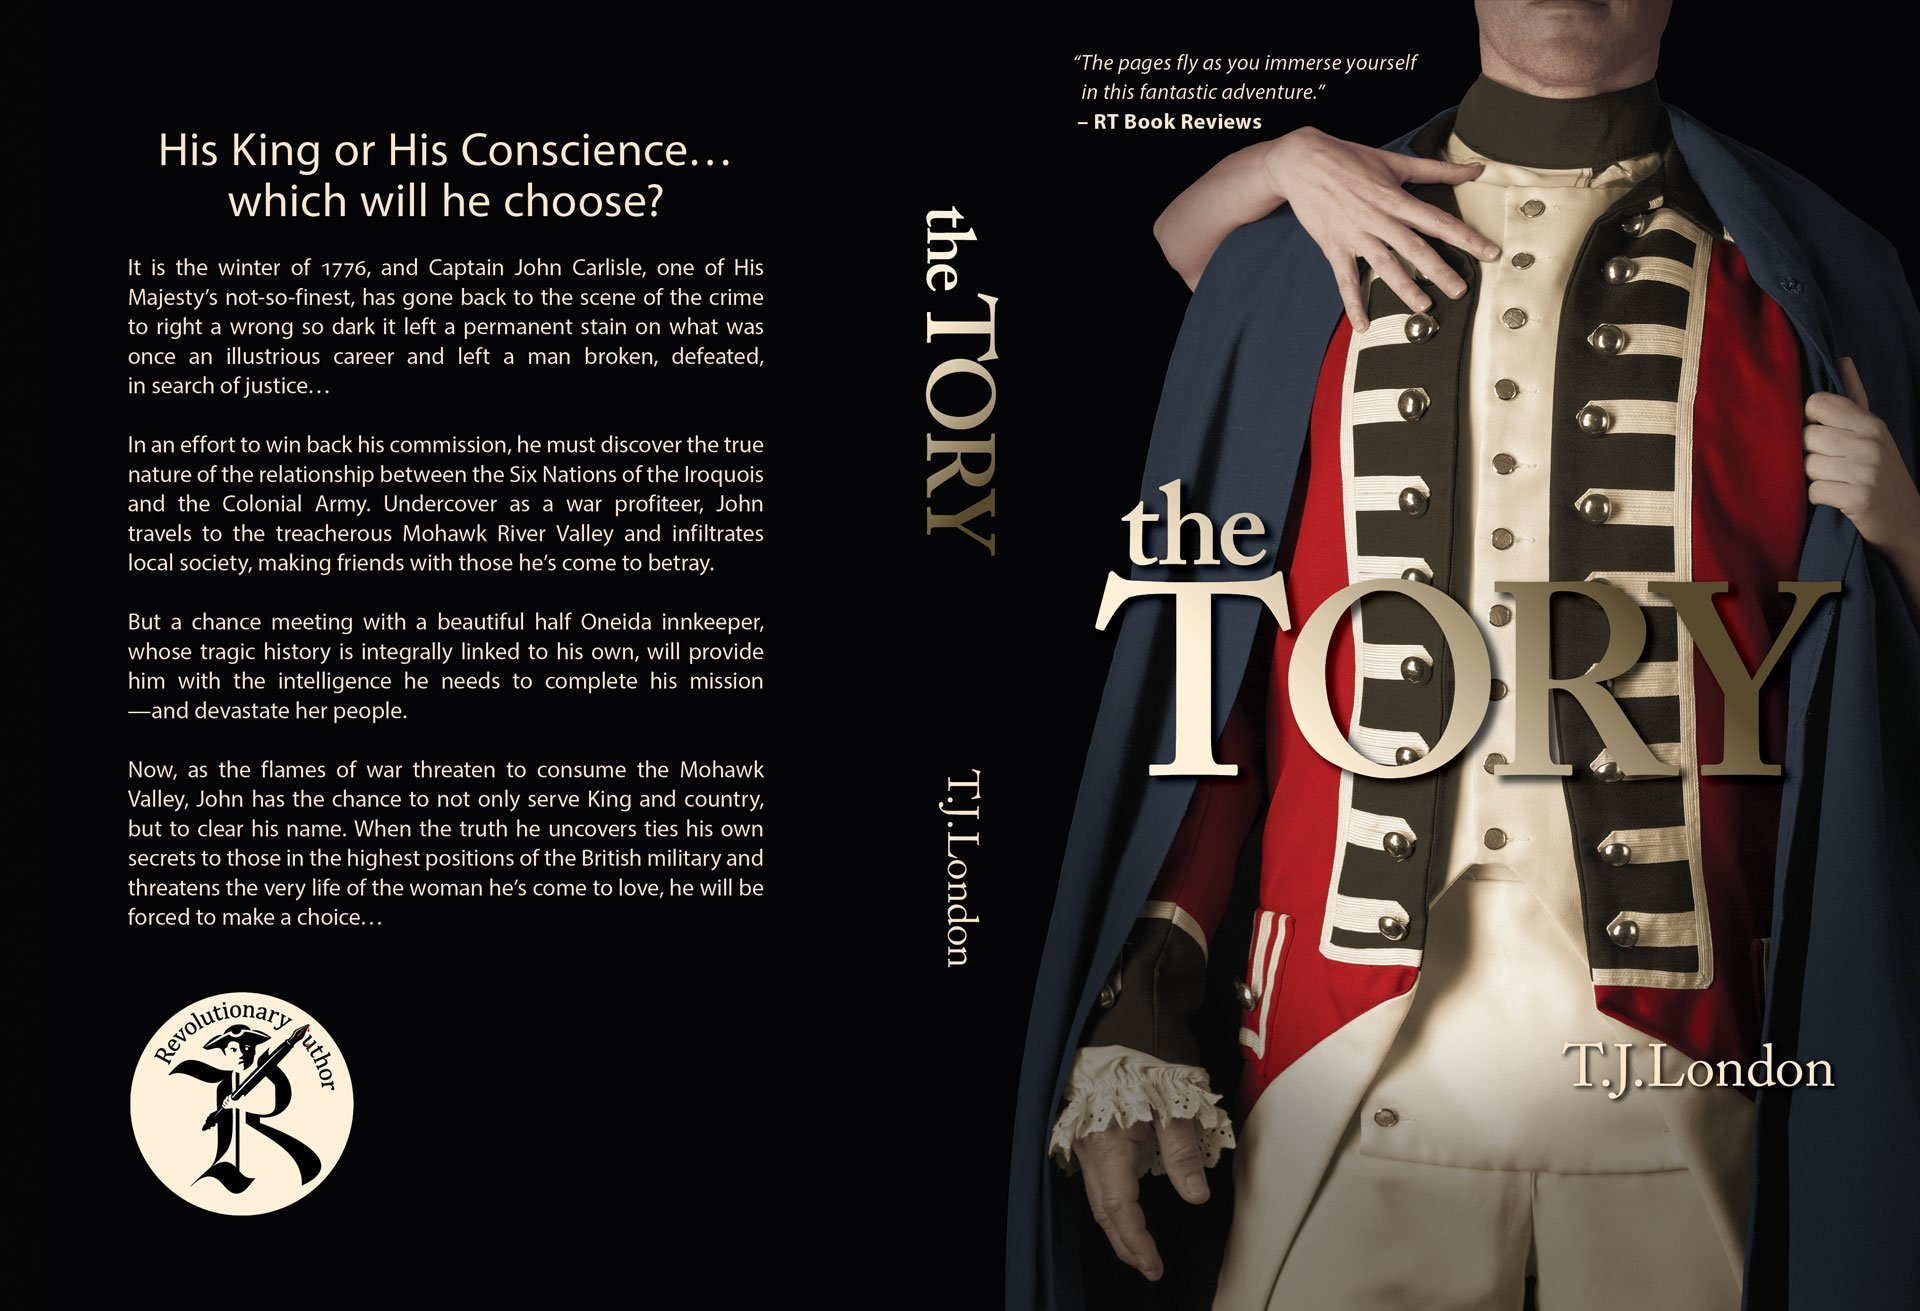 The Tory - Book Jacket Design